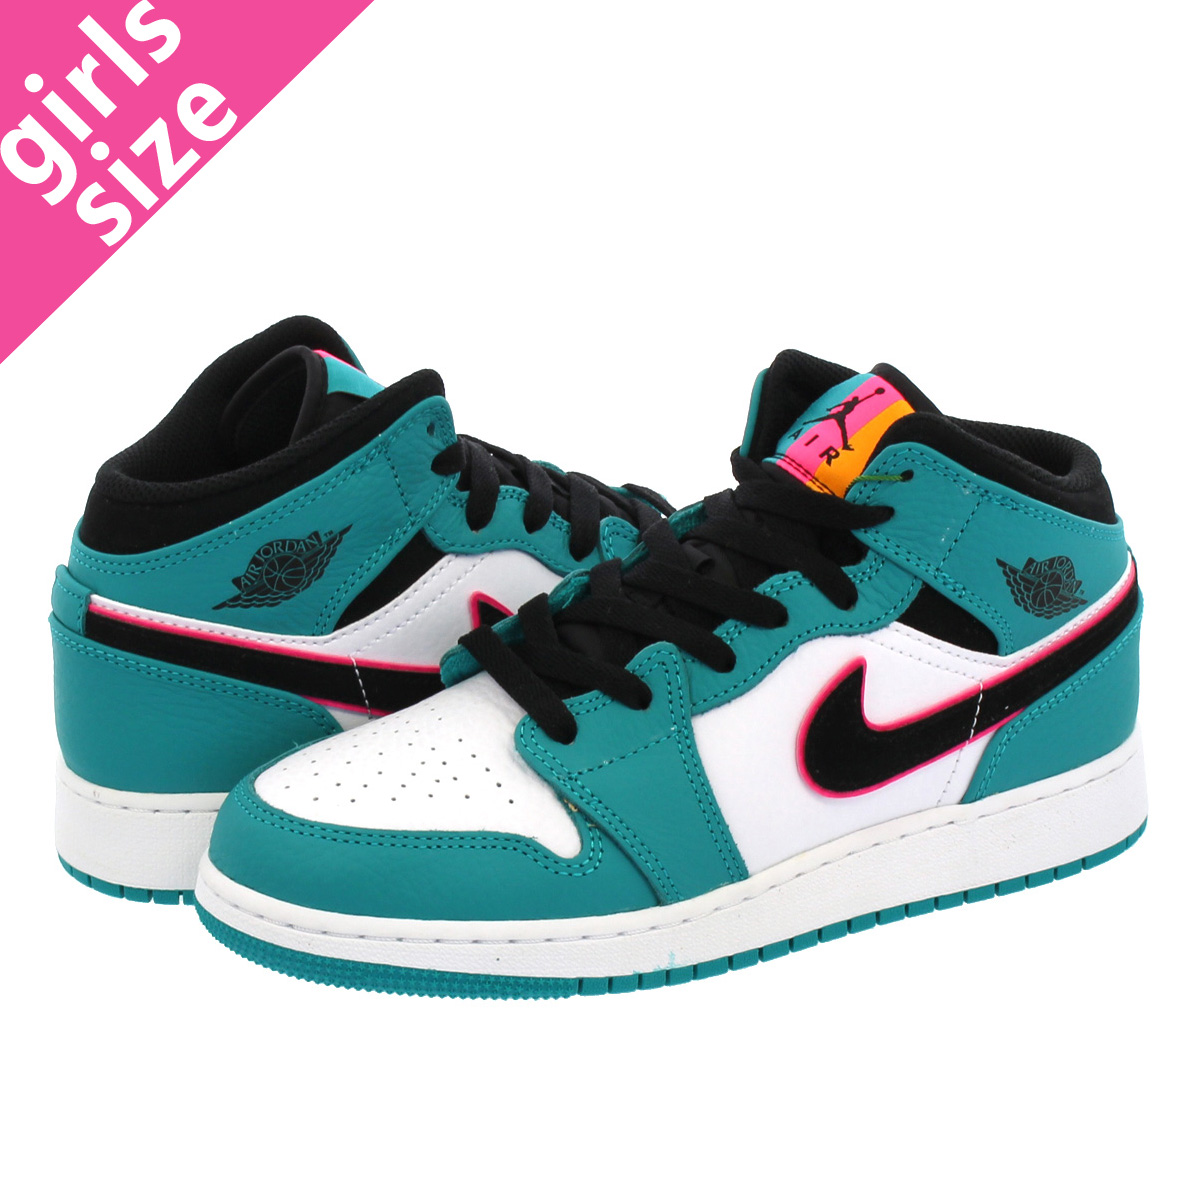 f1b9c7e03a8 LOWTEX BIG-SMALL SHOP  NIKE AIR JORDAN 1 MID BG Nike Air Jordan 1 mid BG  TURBO GREEN BLACK HYPER PINK ORANGE PEEL bq6931-306